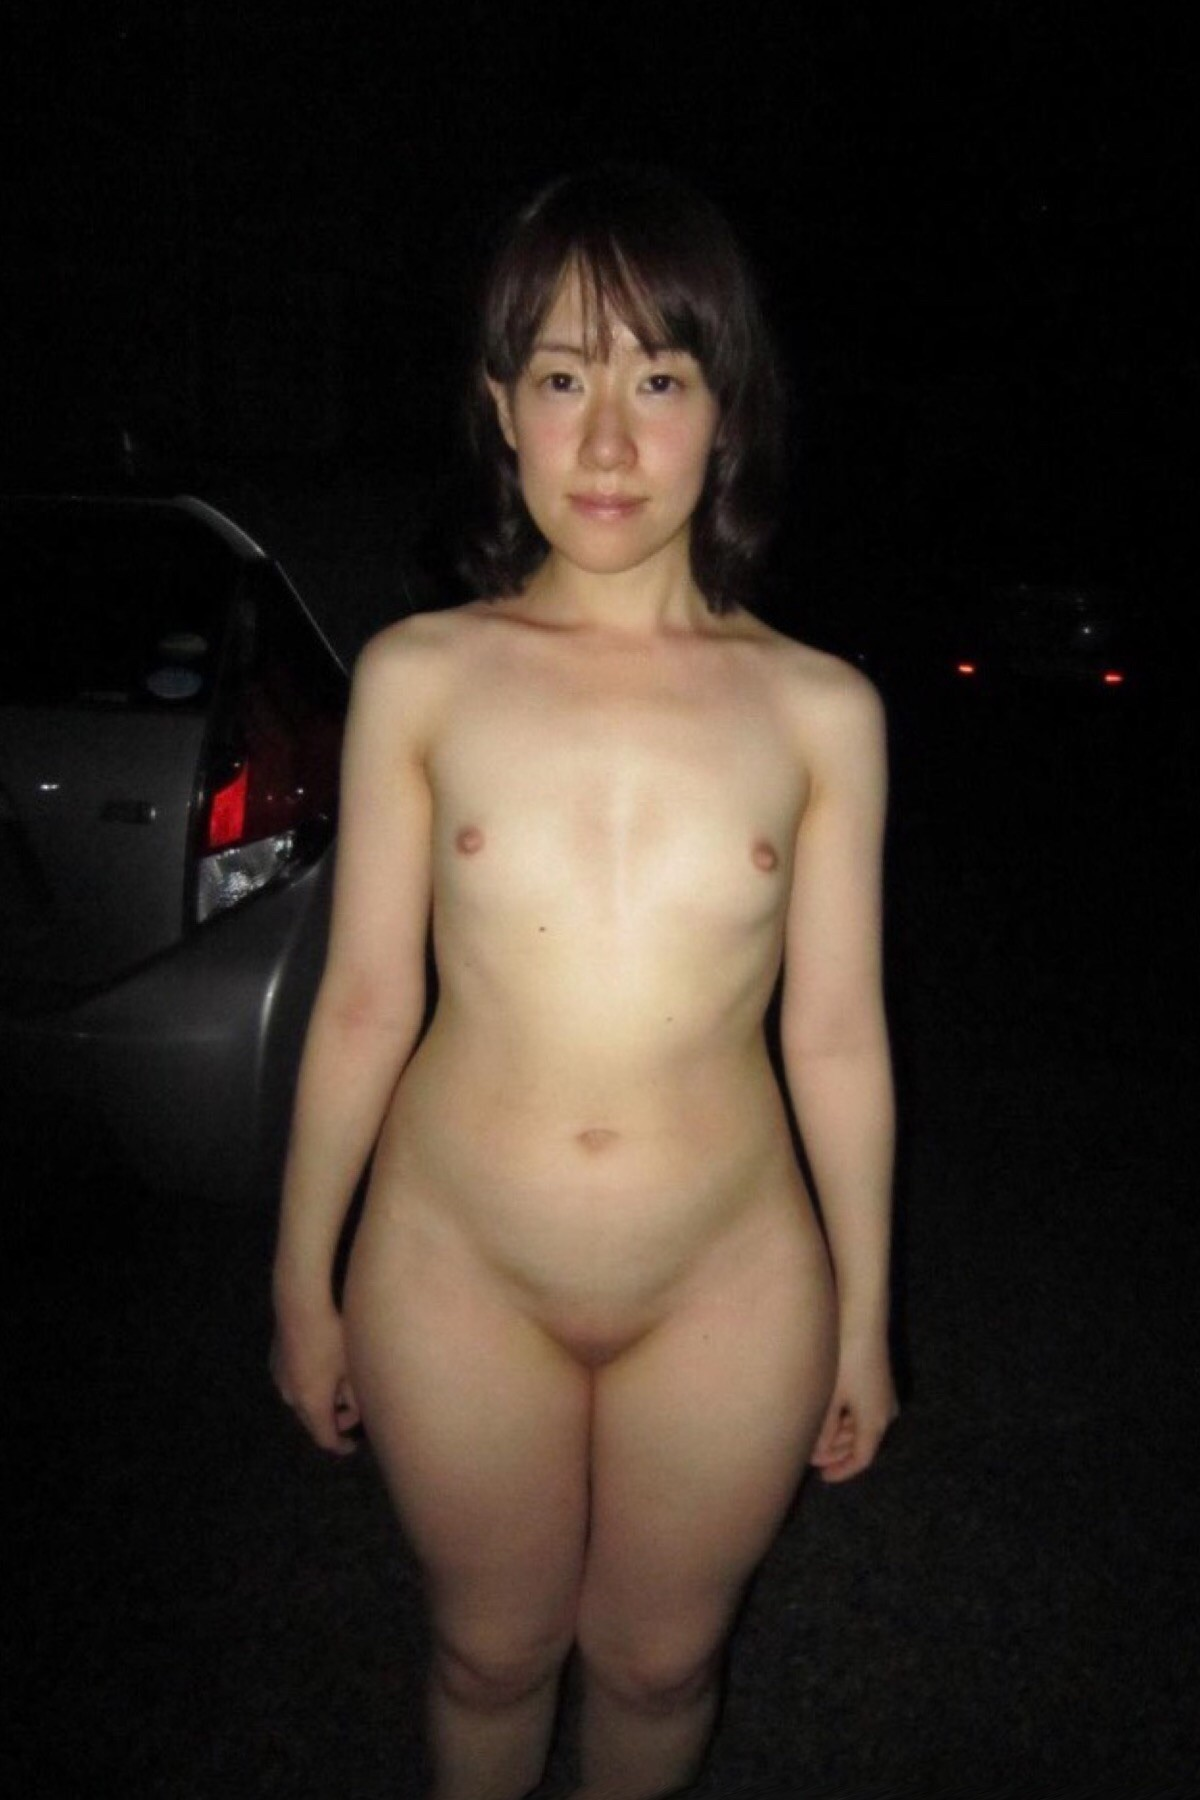 Give both amateur asian wife nude that perfect